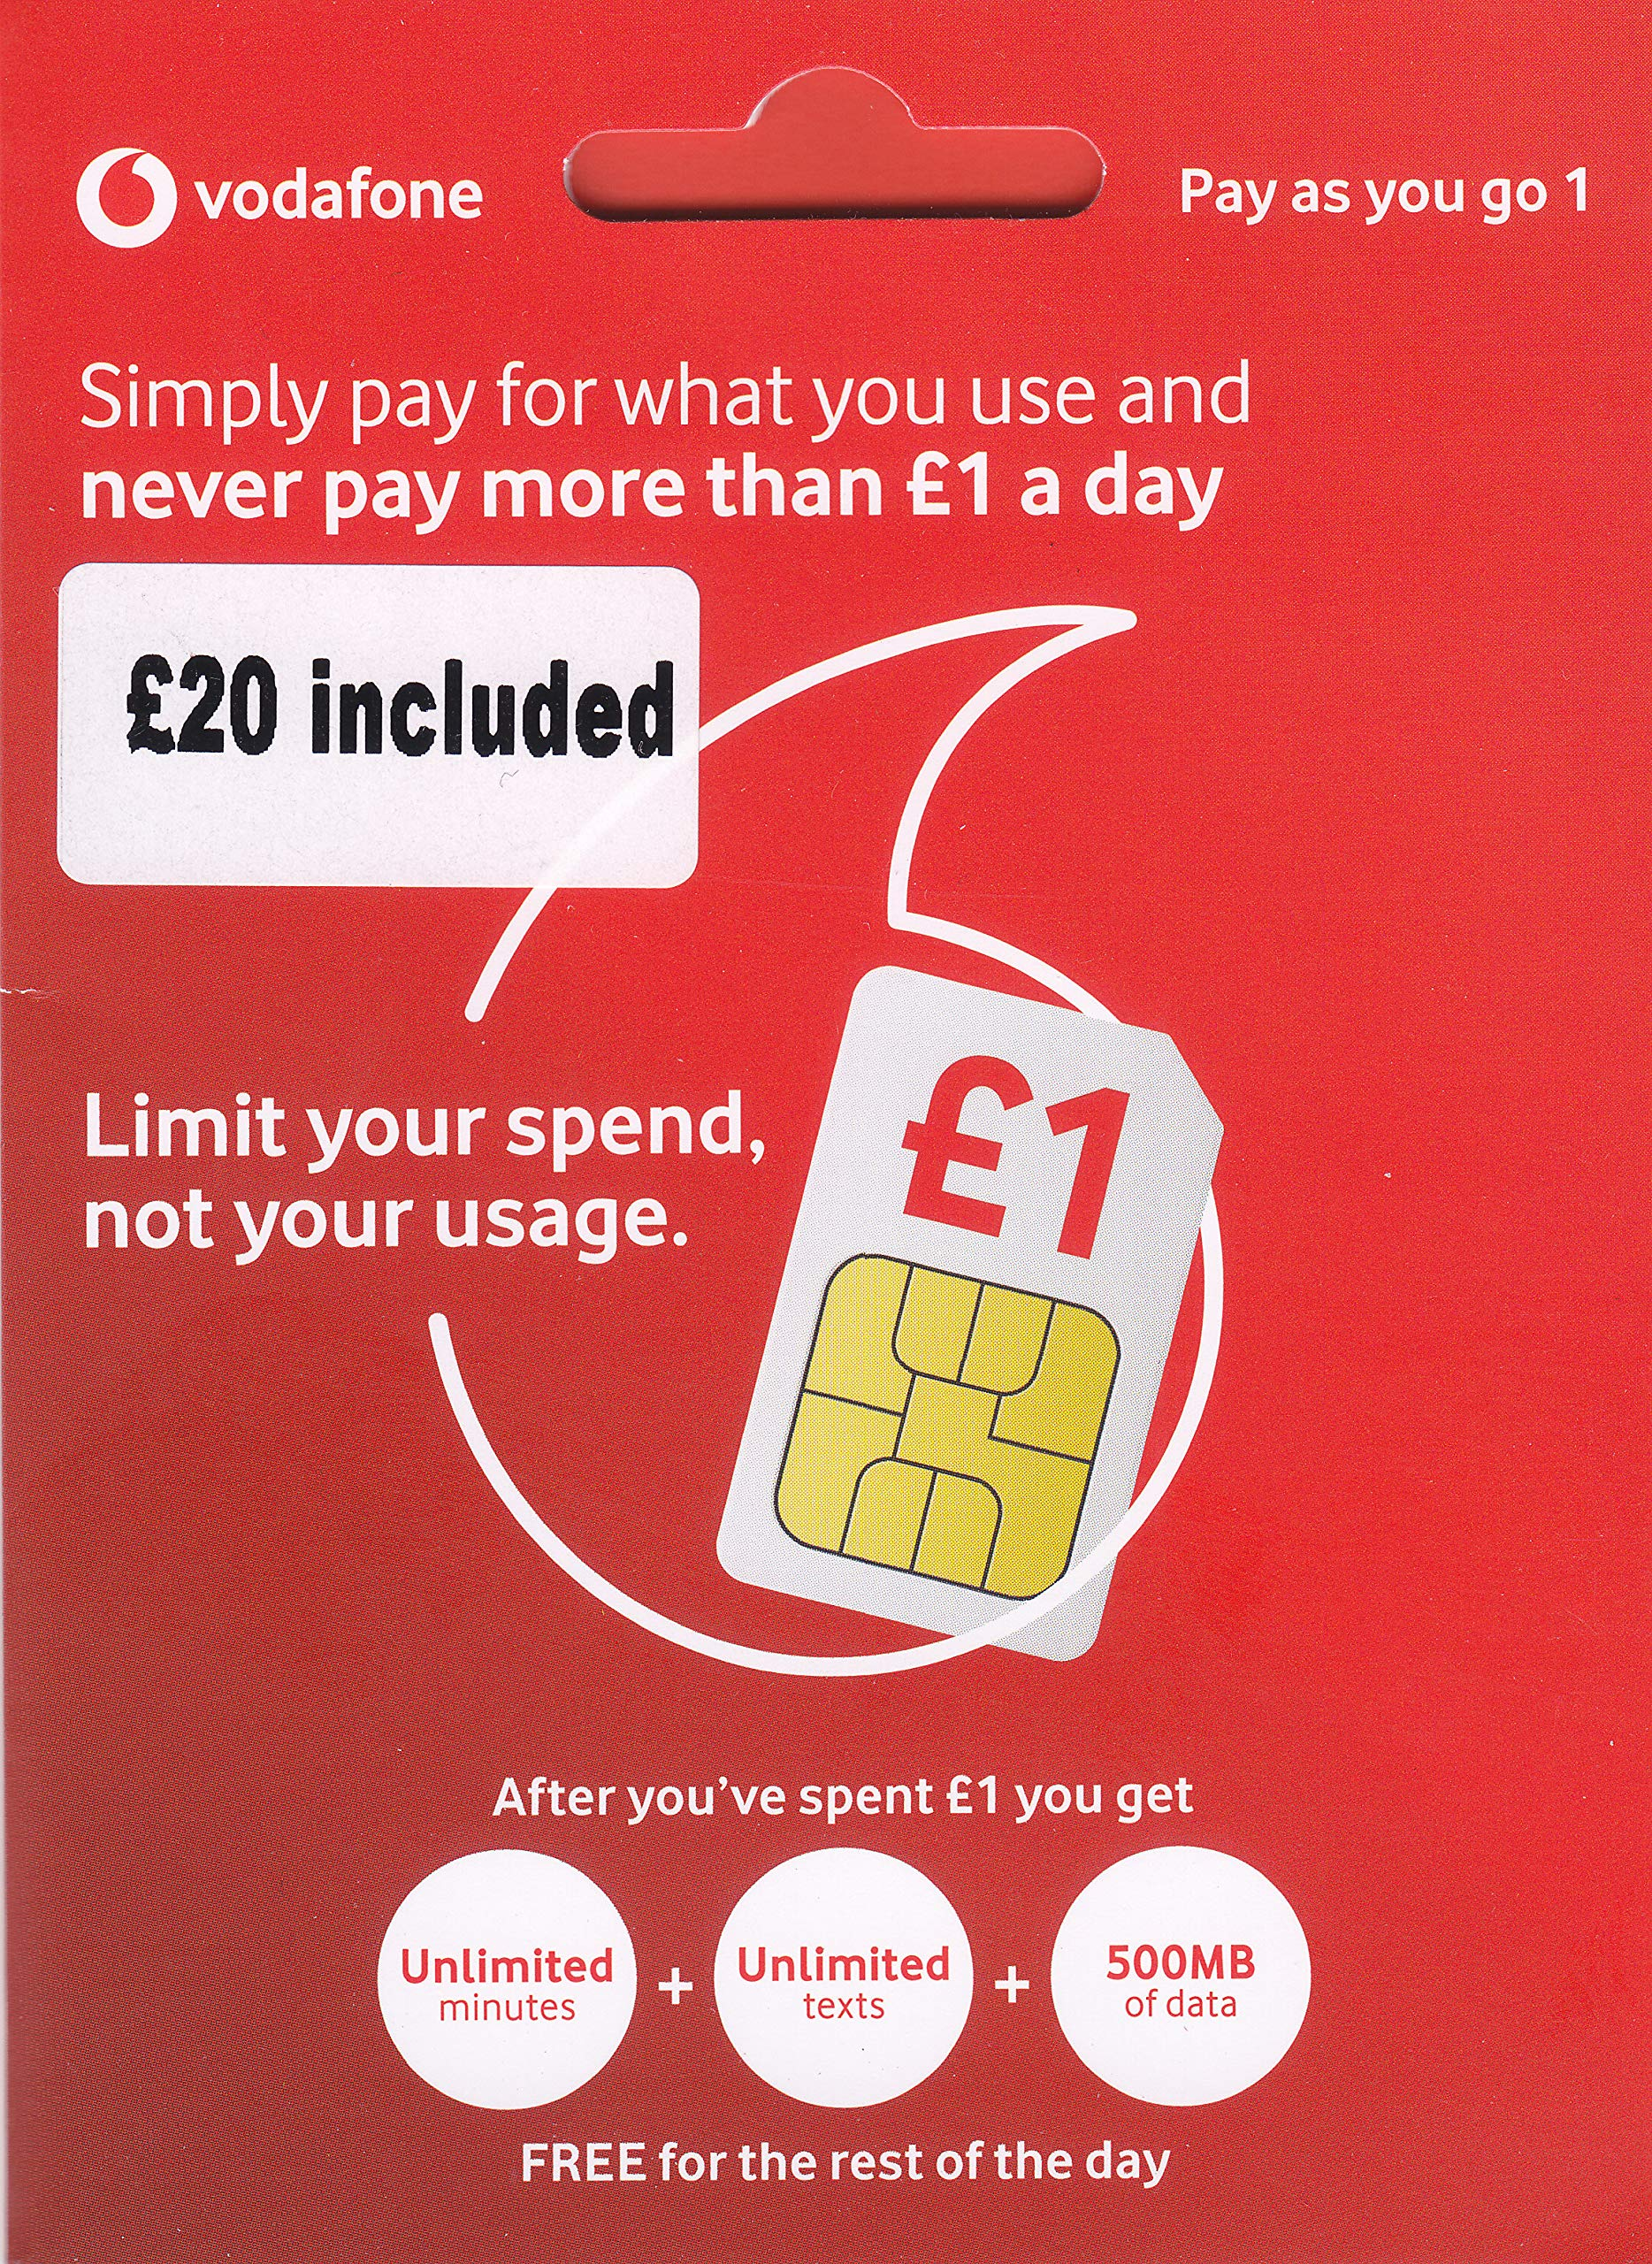 UK Vodafone SIM Card with £20 Credit preloaded, 4G Data, Voice mins and Texts to use in Europe and The UK by Vodafone